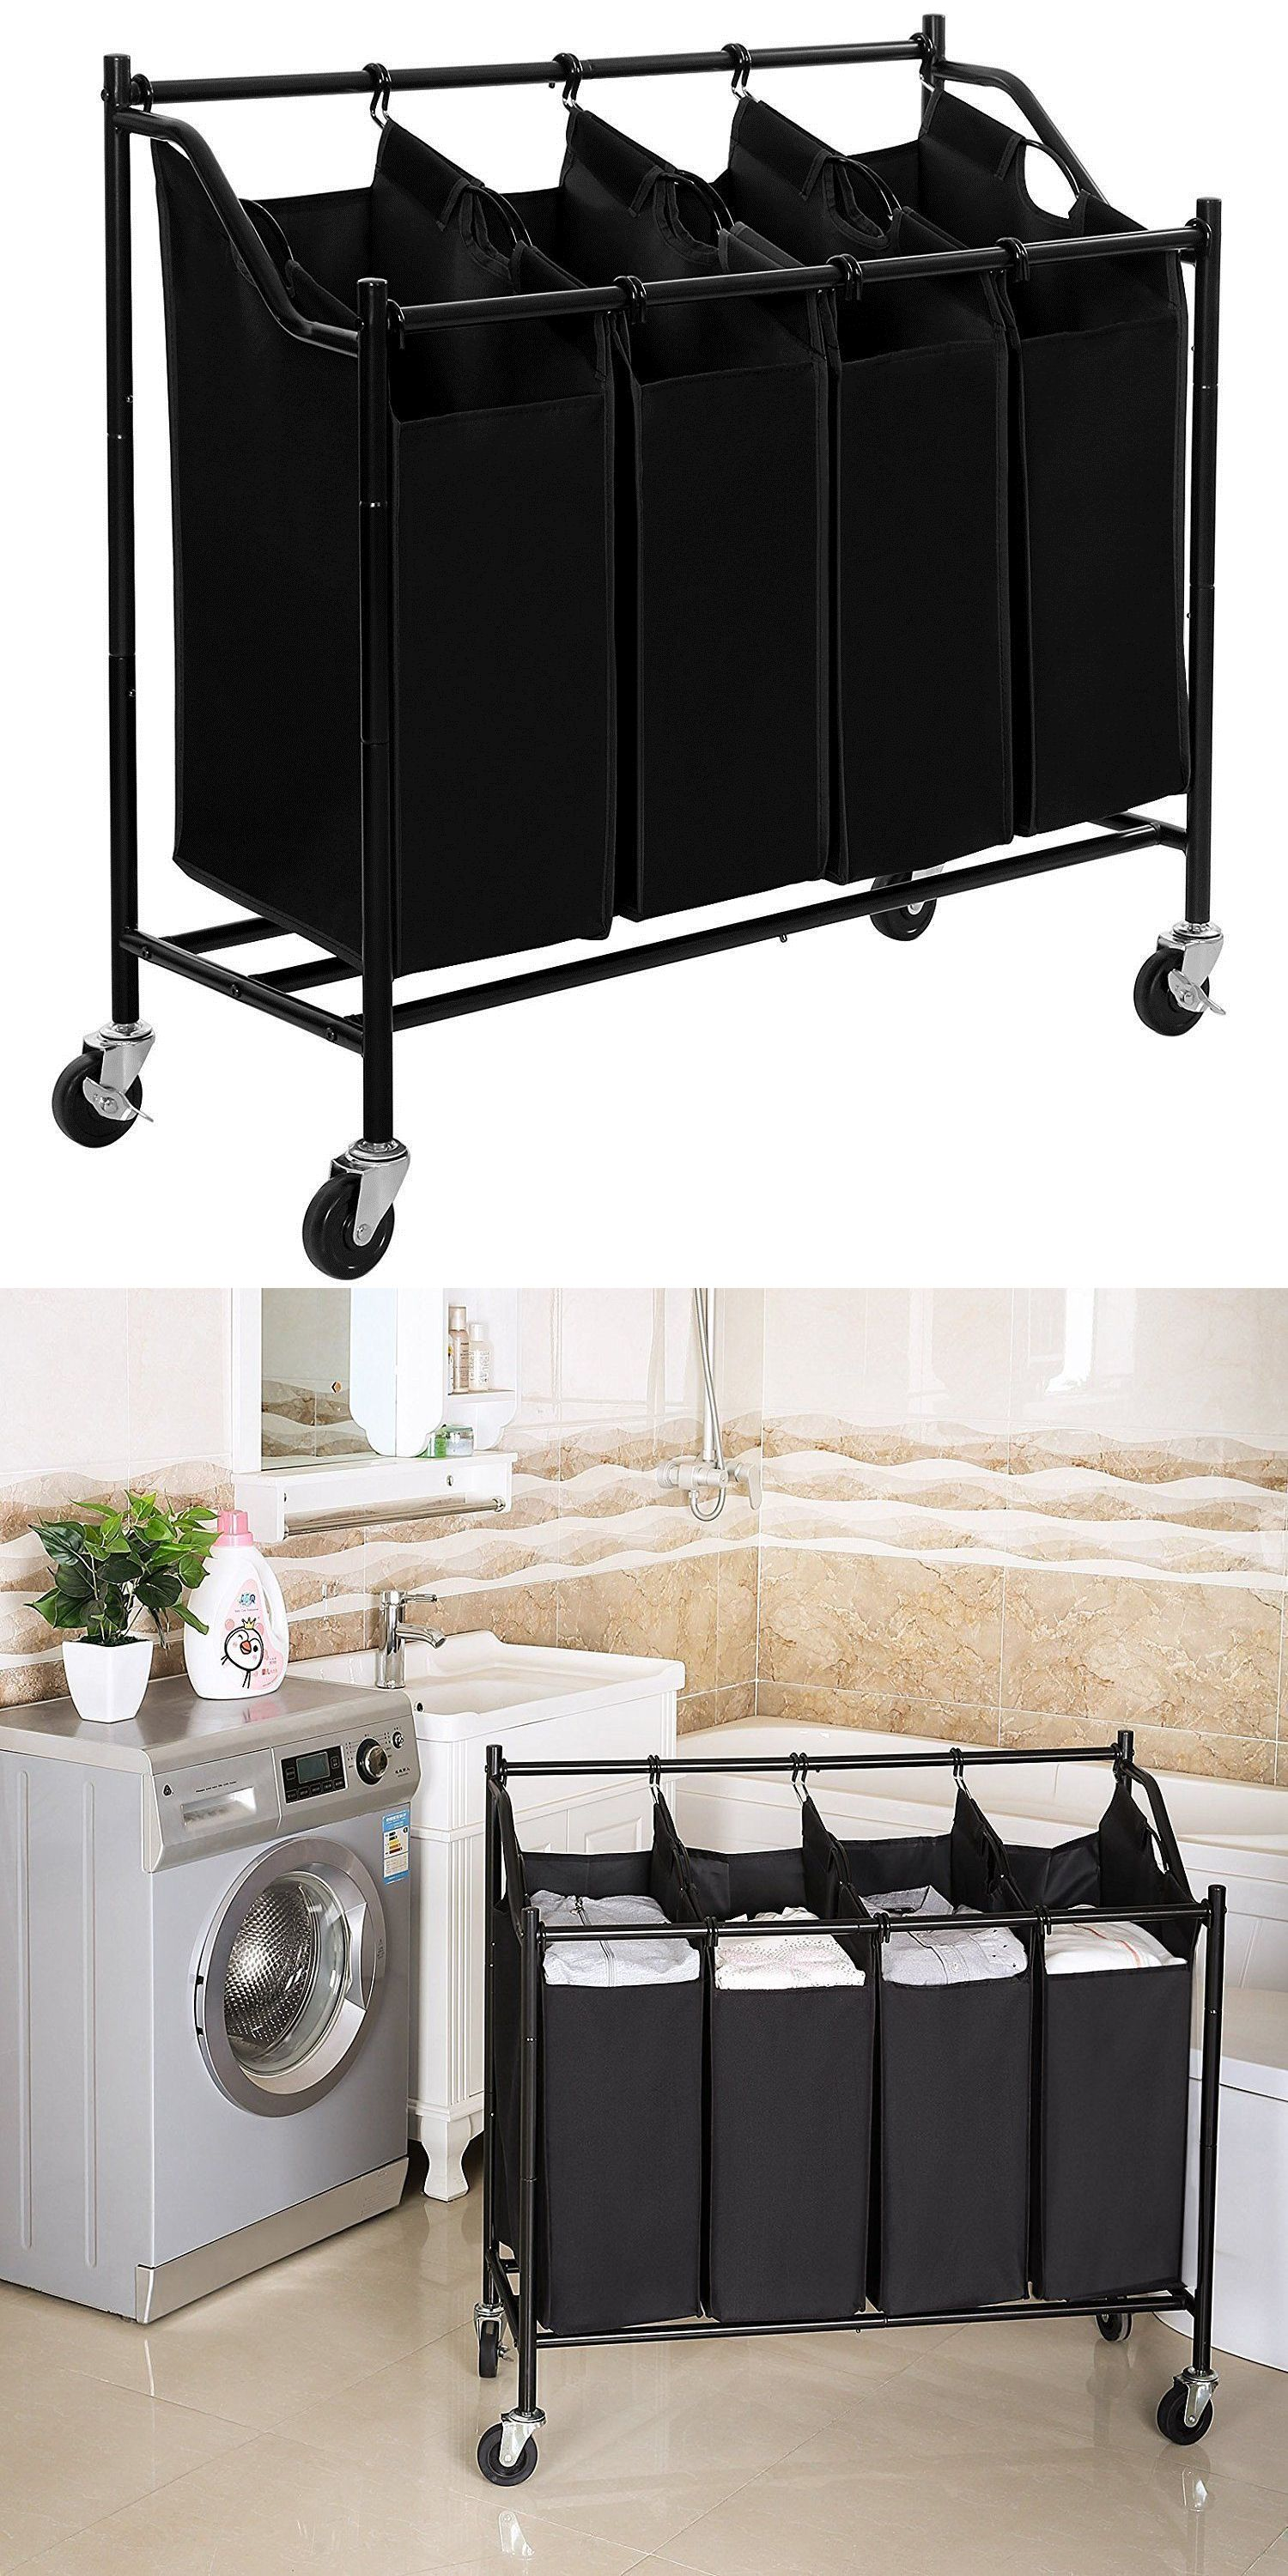 Best Of Laundry sorter with Table